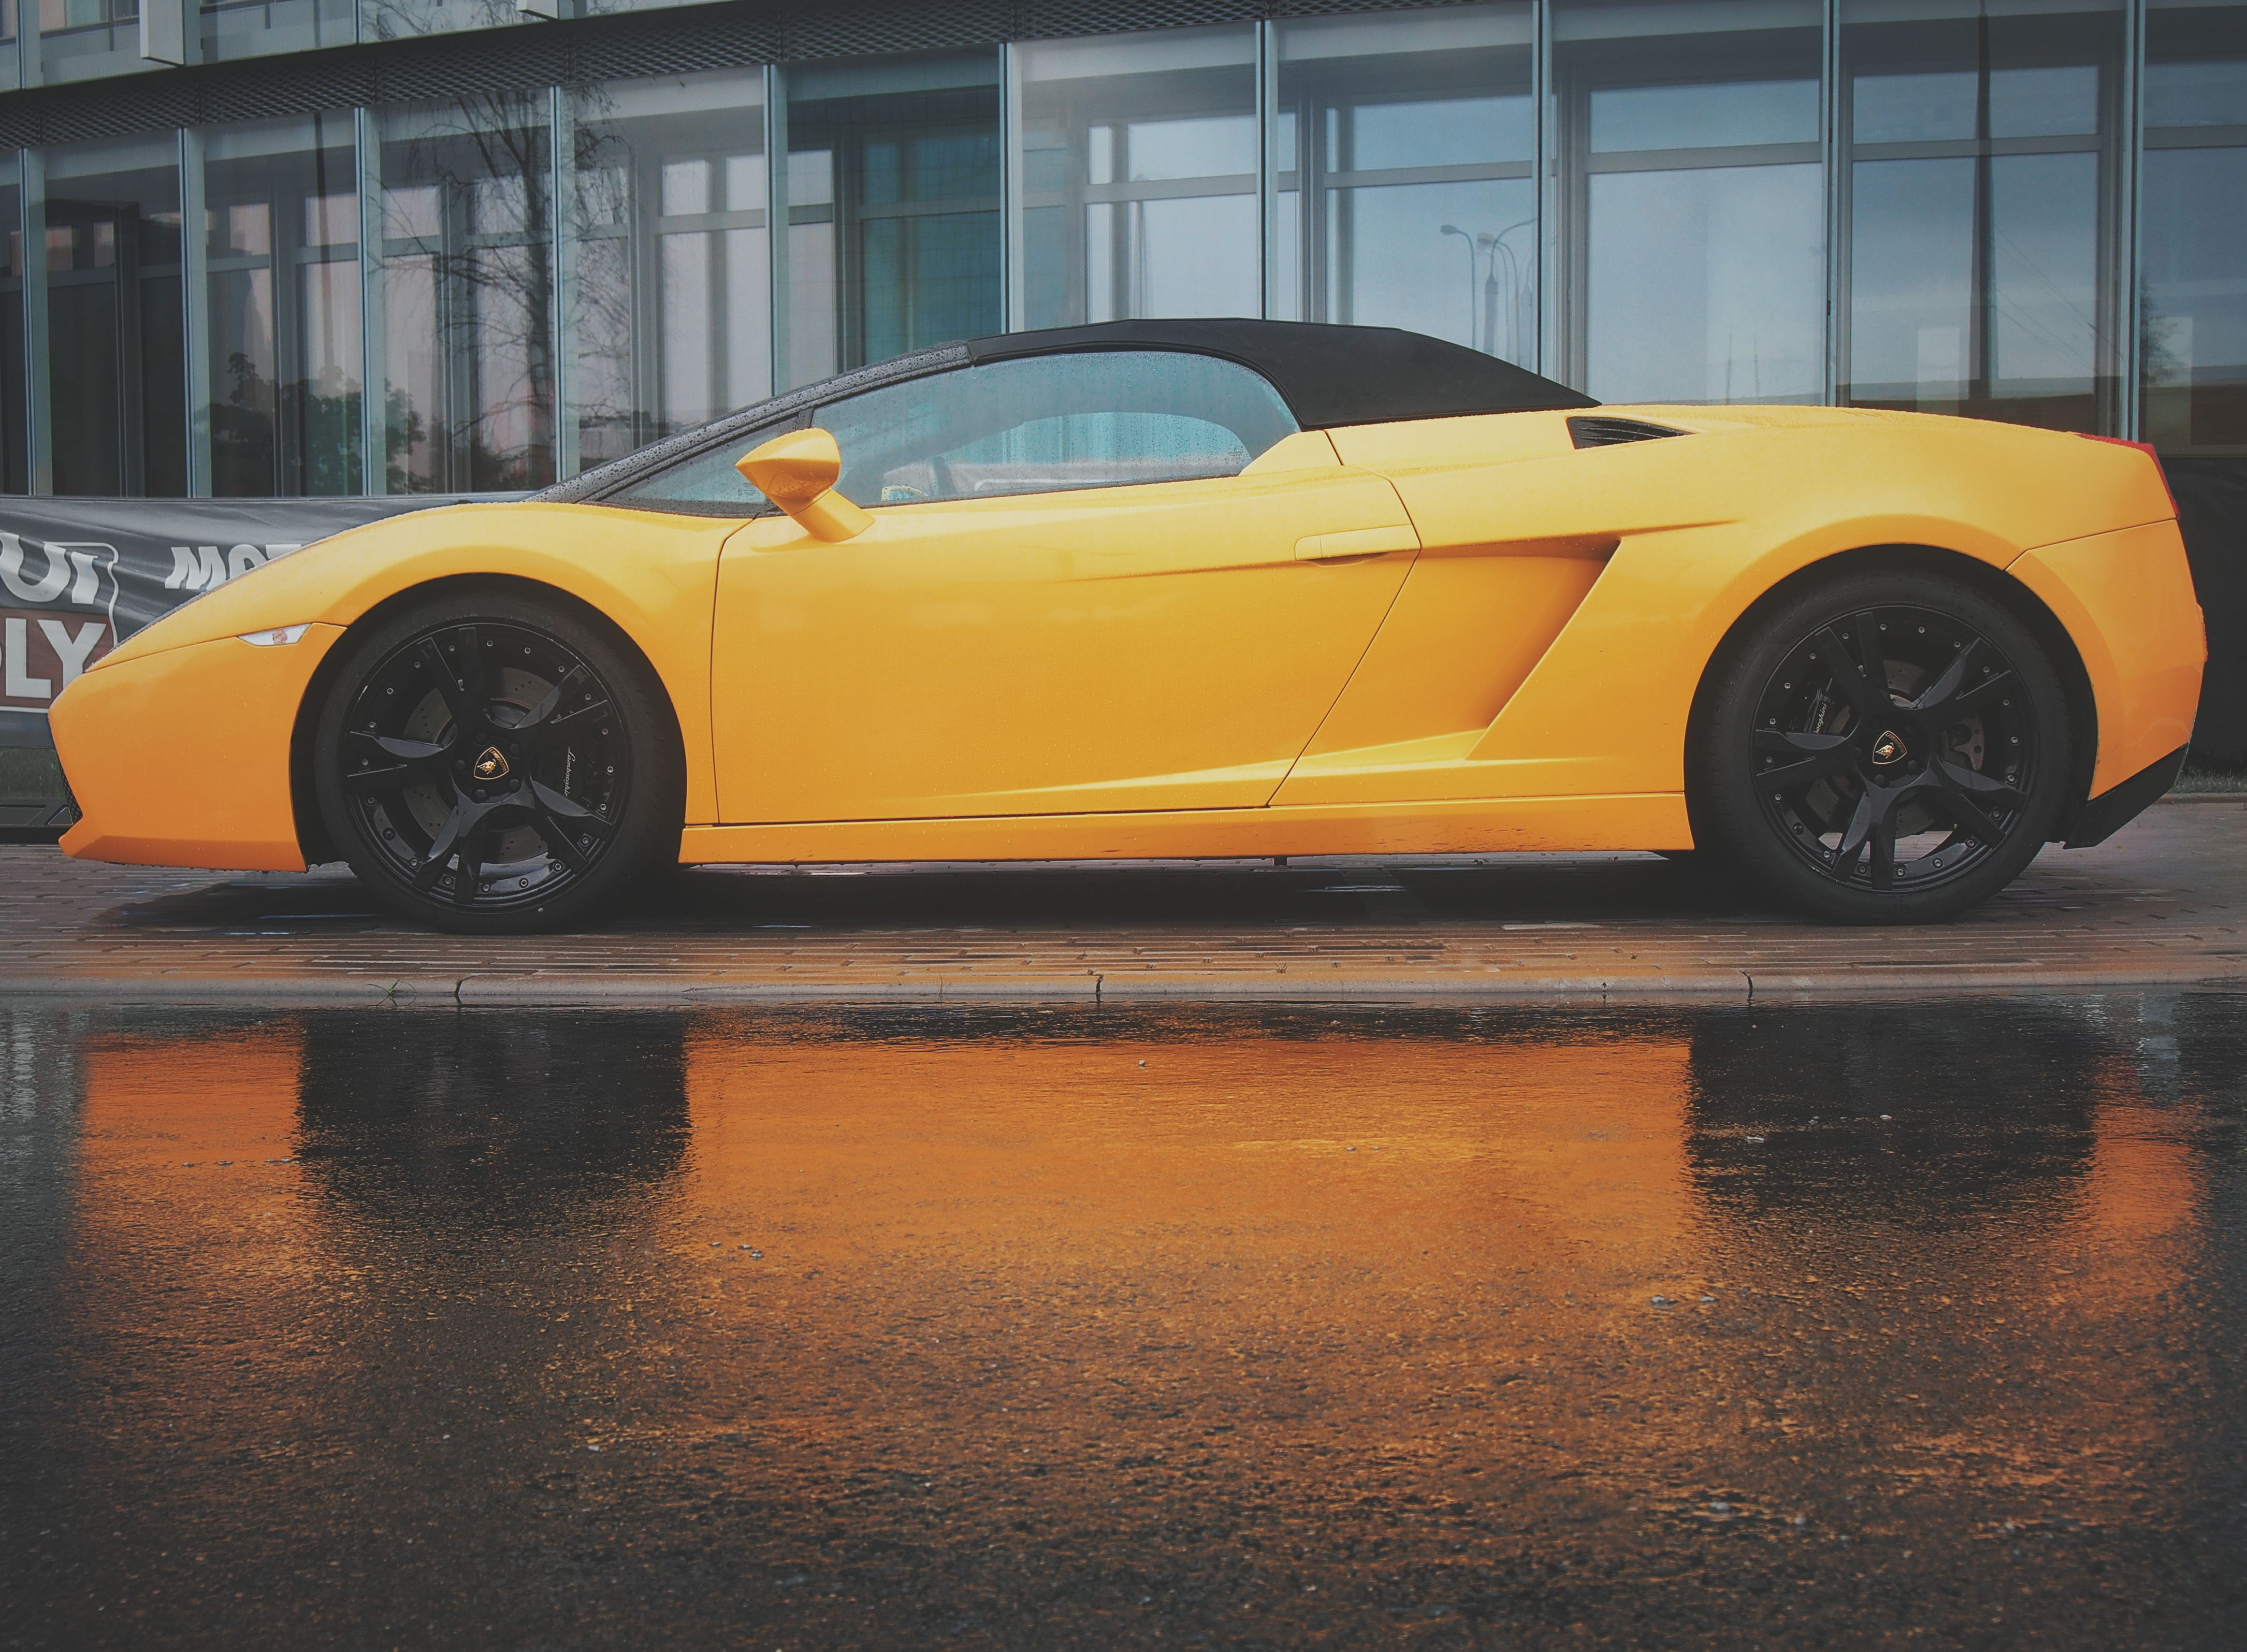 Charming Lamborghini Gallardo Spyder / Engine: NA 5.0L V10 512hp / Max Speed: 314